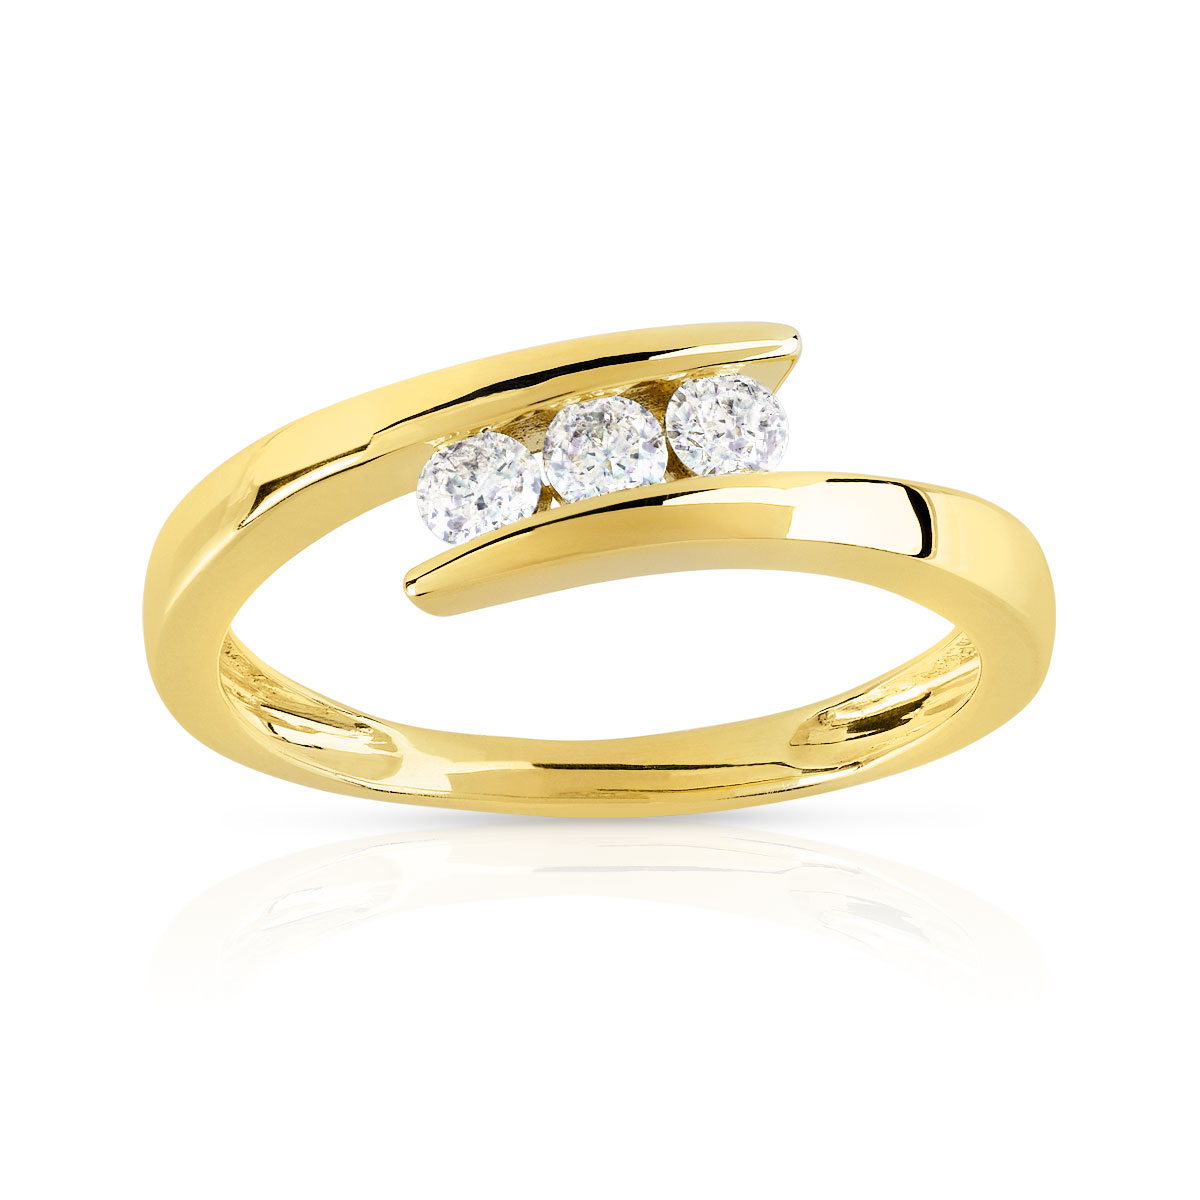 Bague Trilogy or 750 jaune diamant - vue 1